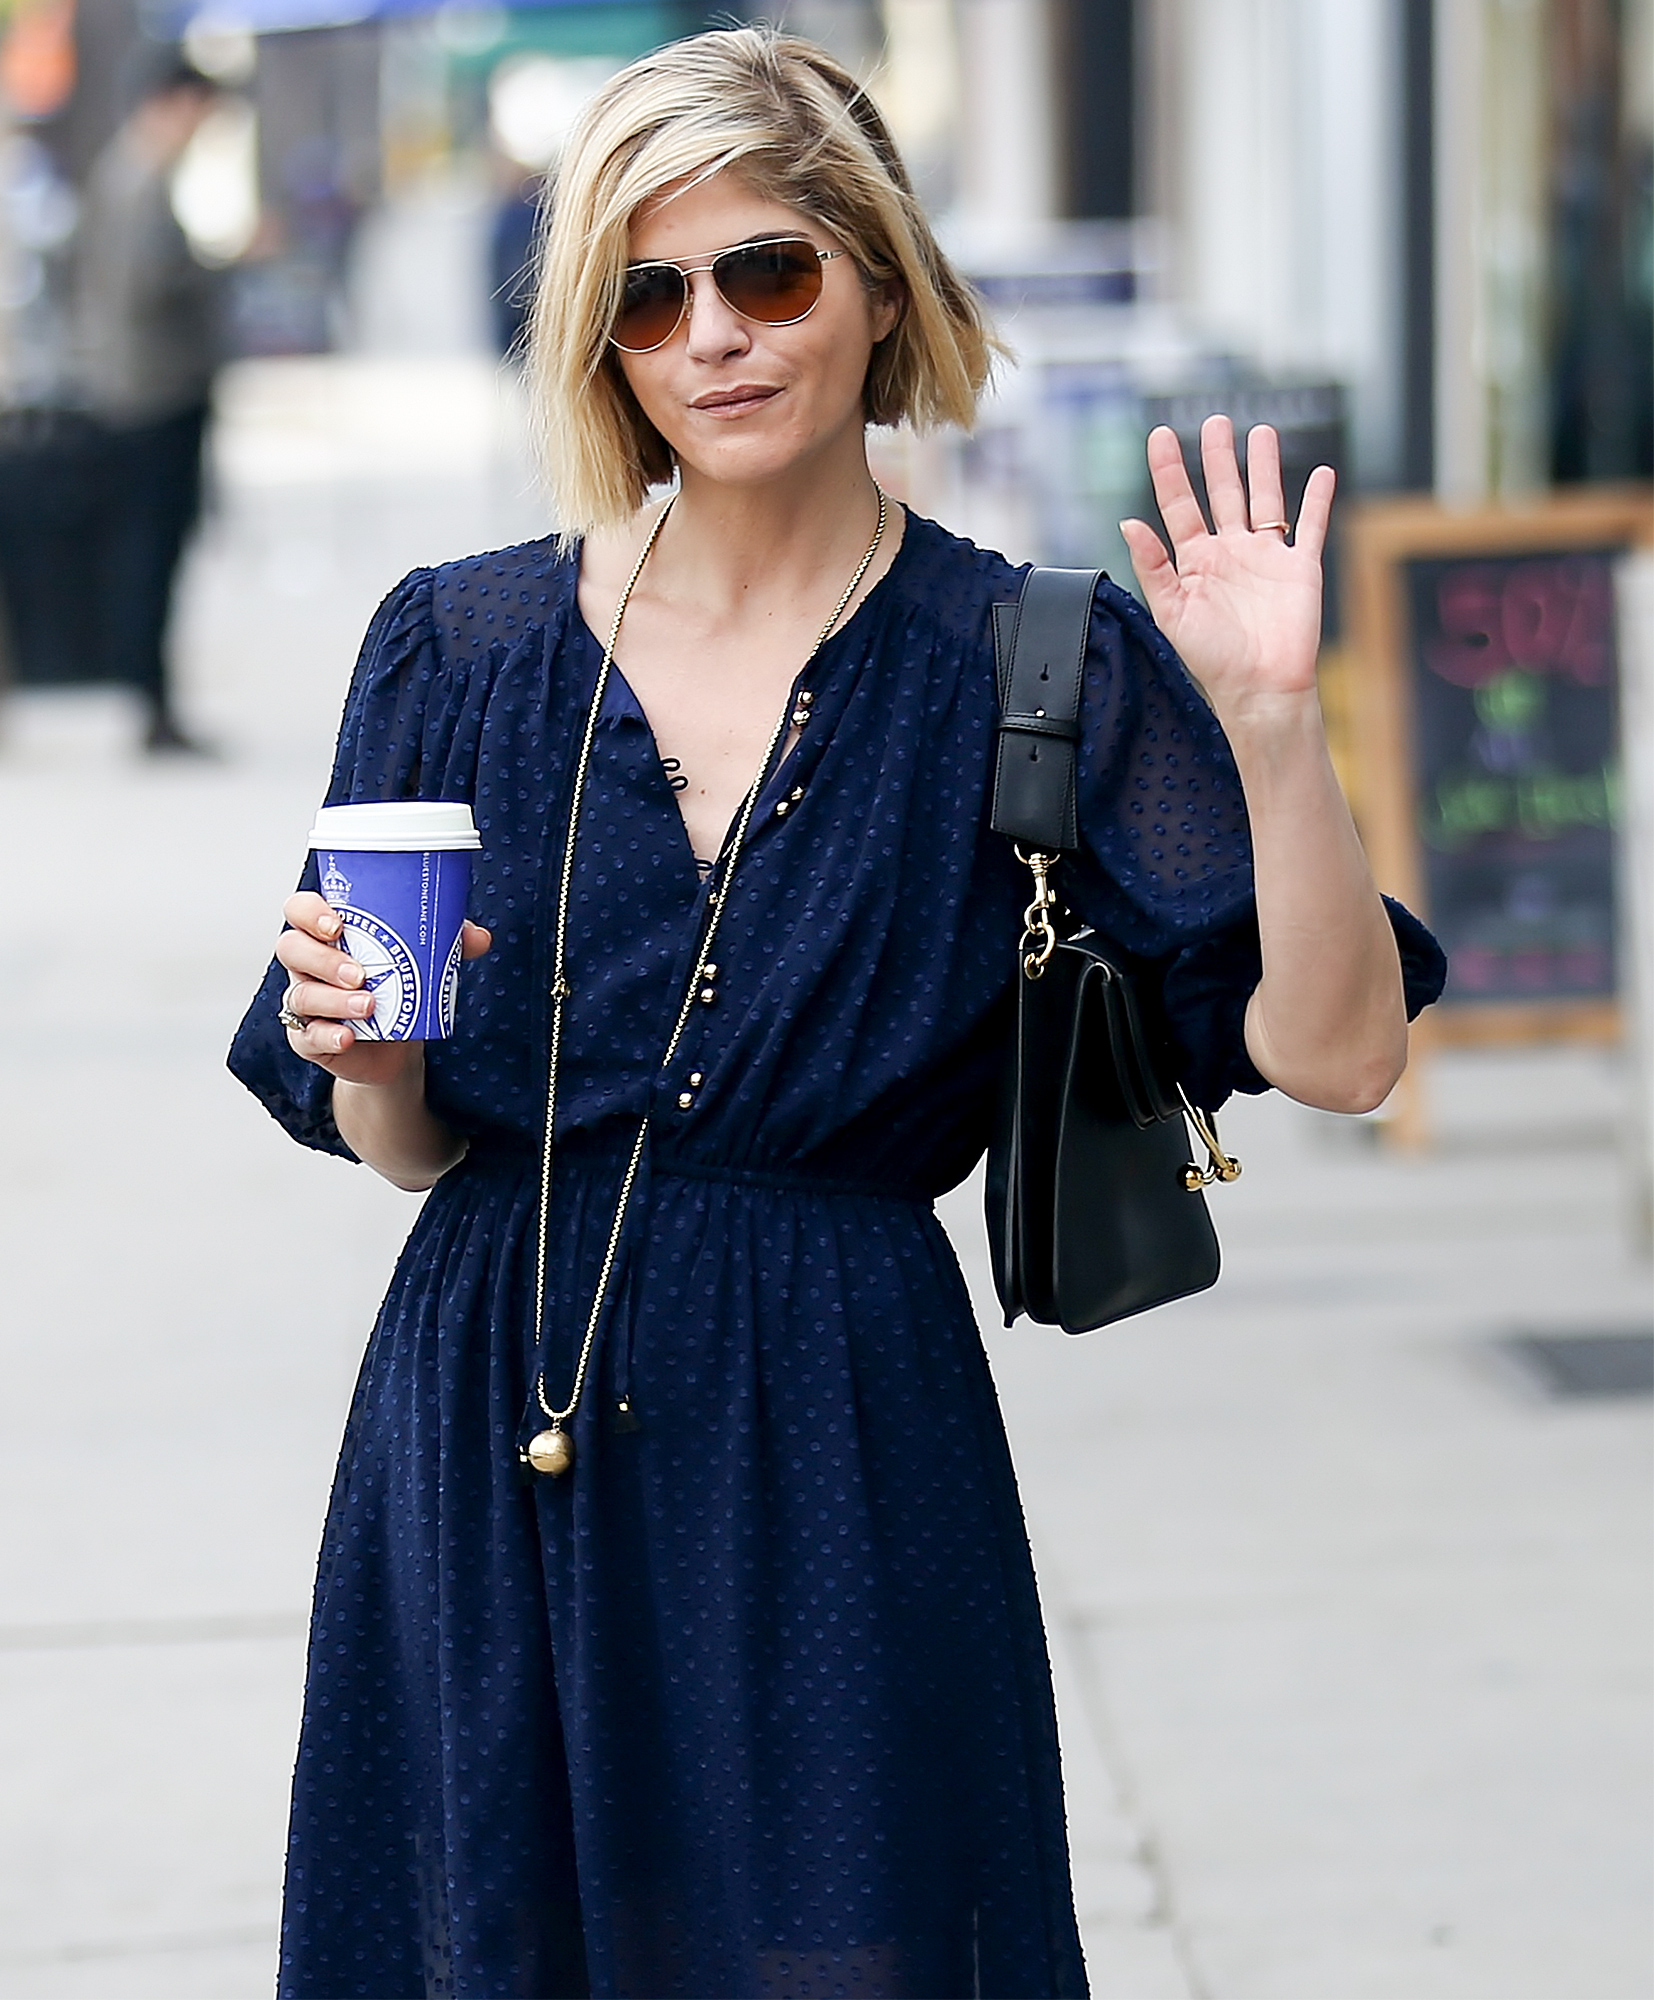 EXCLUSIVE: Selma Blair Gets Her Morning Coffee In Los Angeles